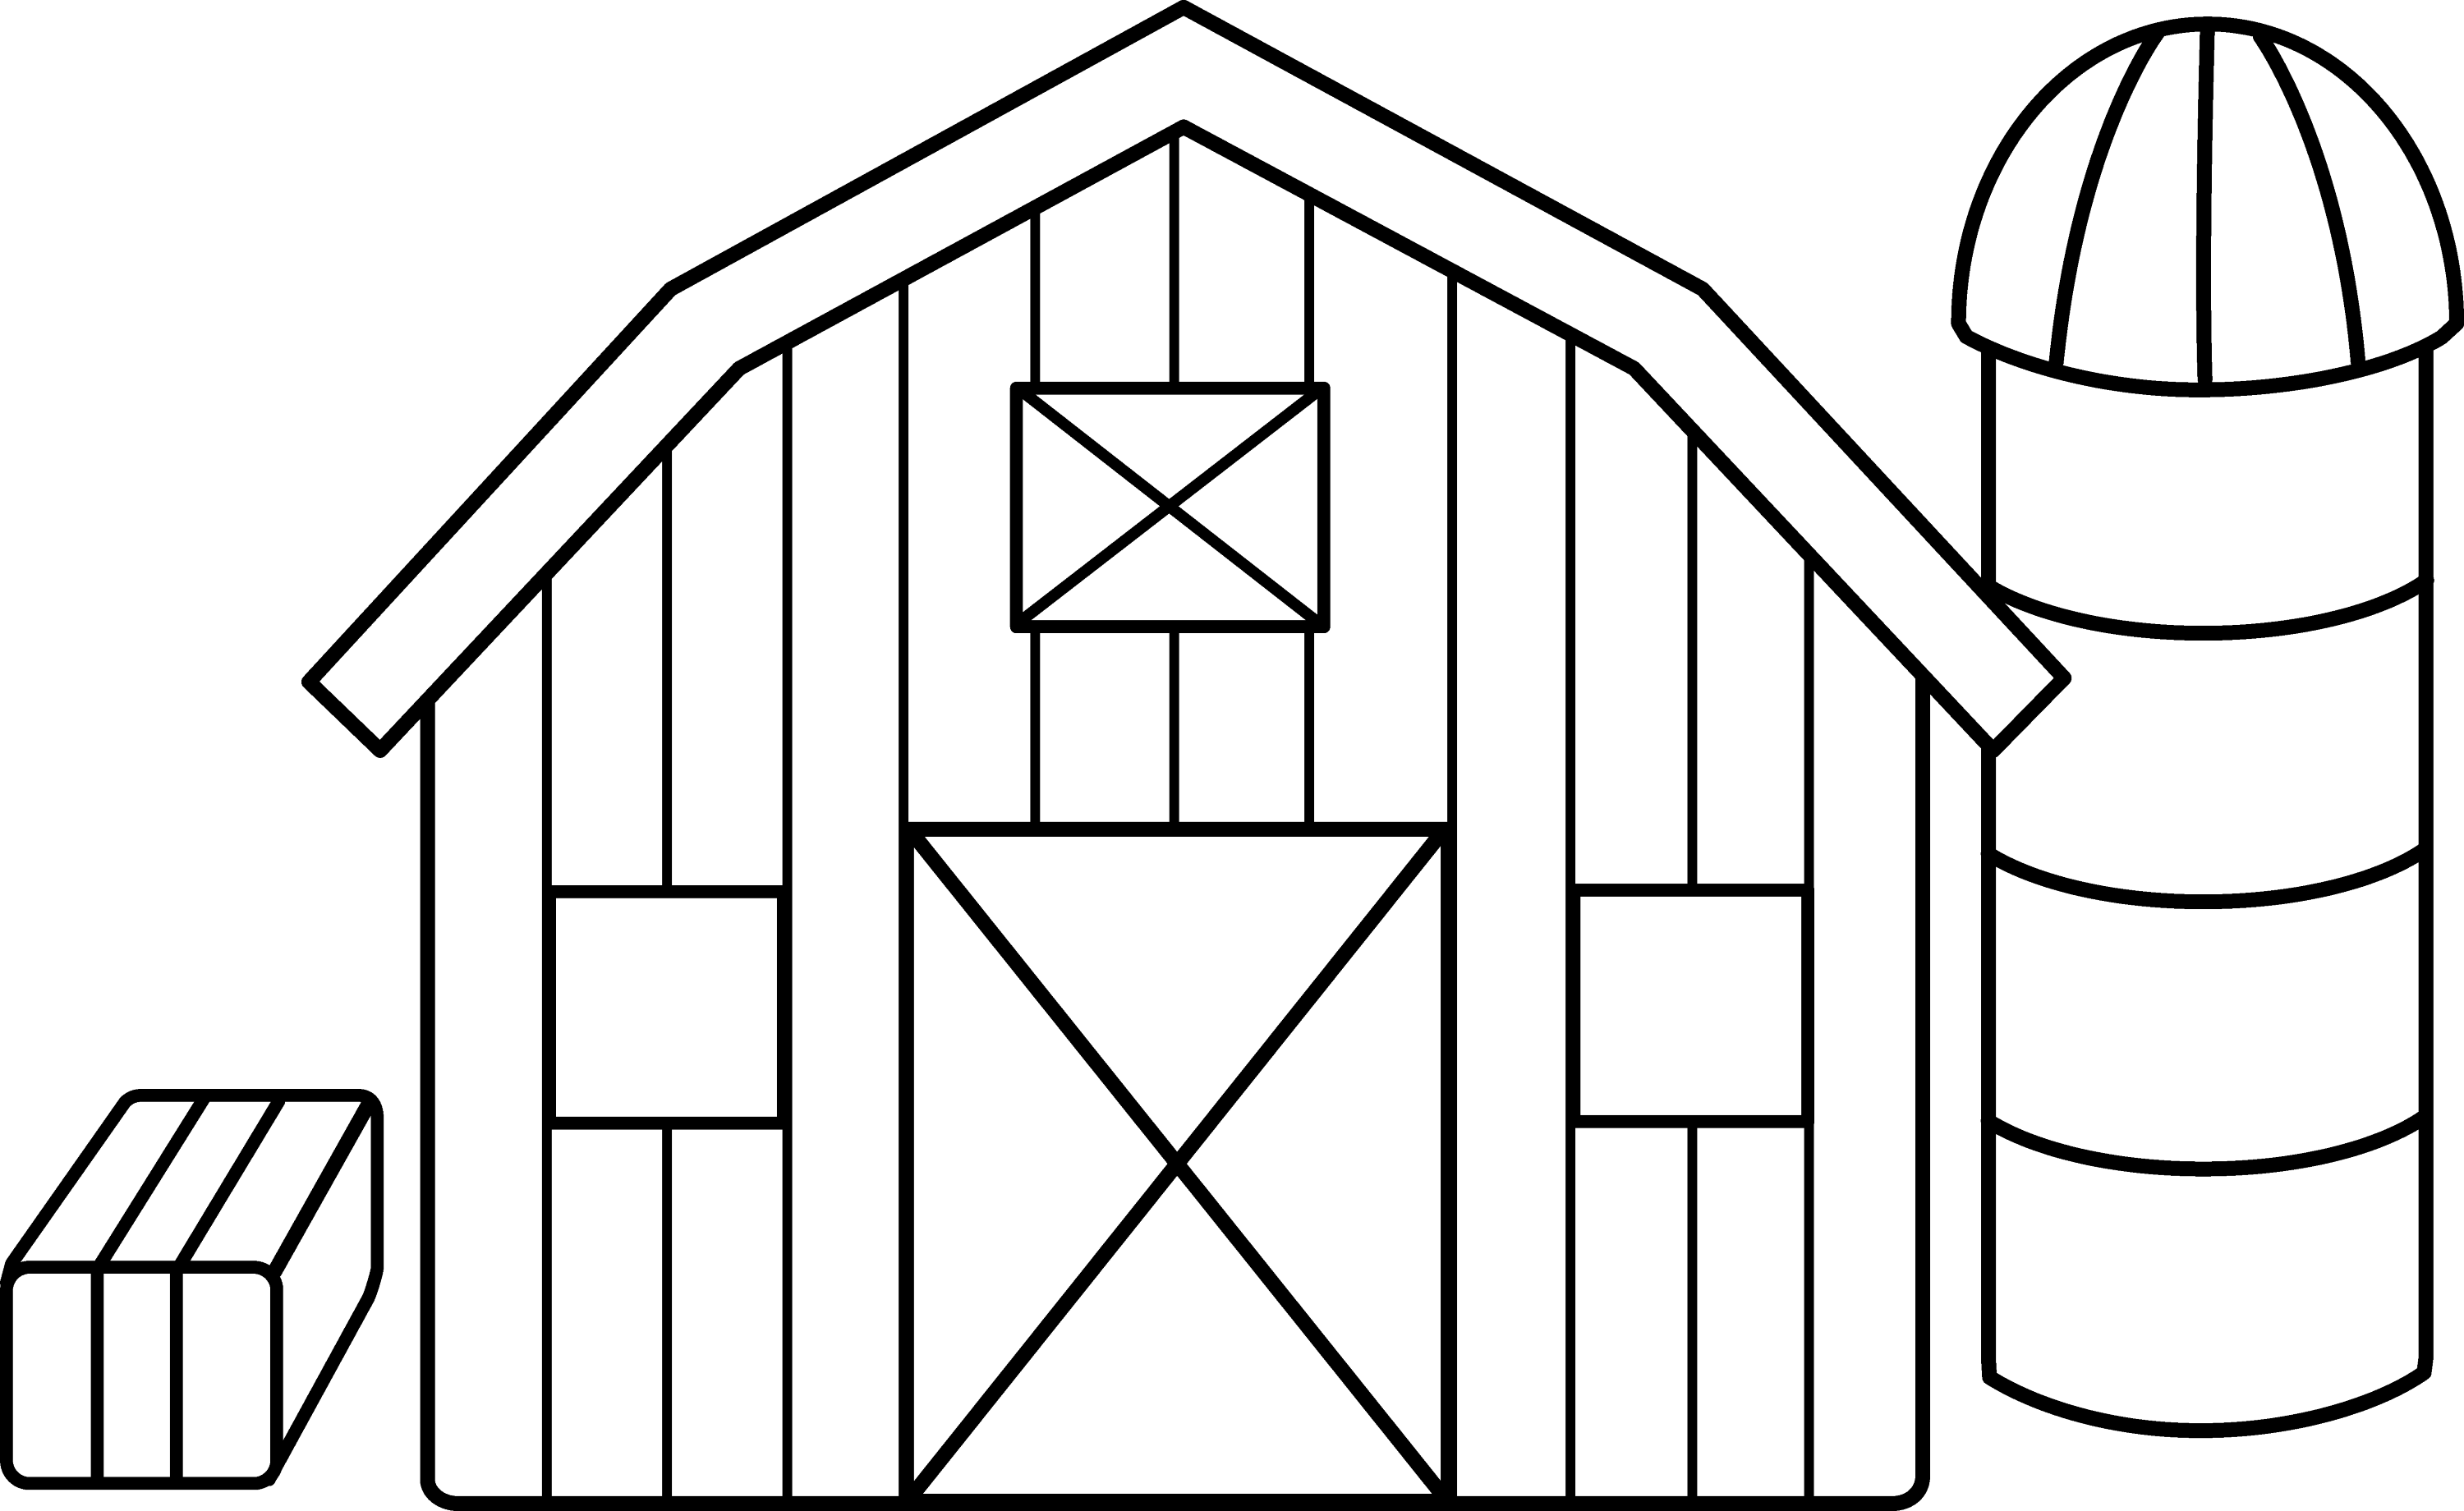 cute farm coloring pages cute baby farm animal coloring pages best coloring pages coloring cute farm pages